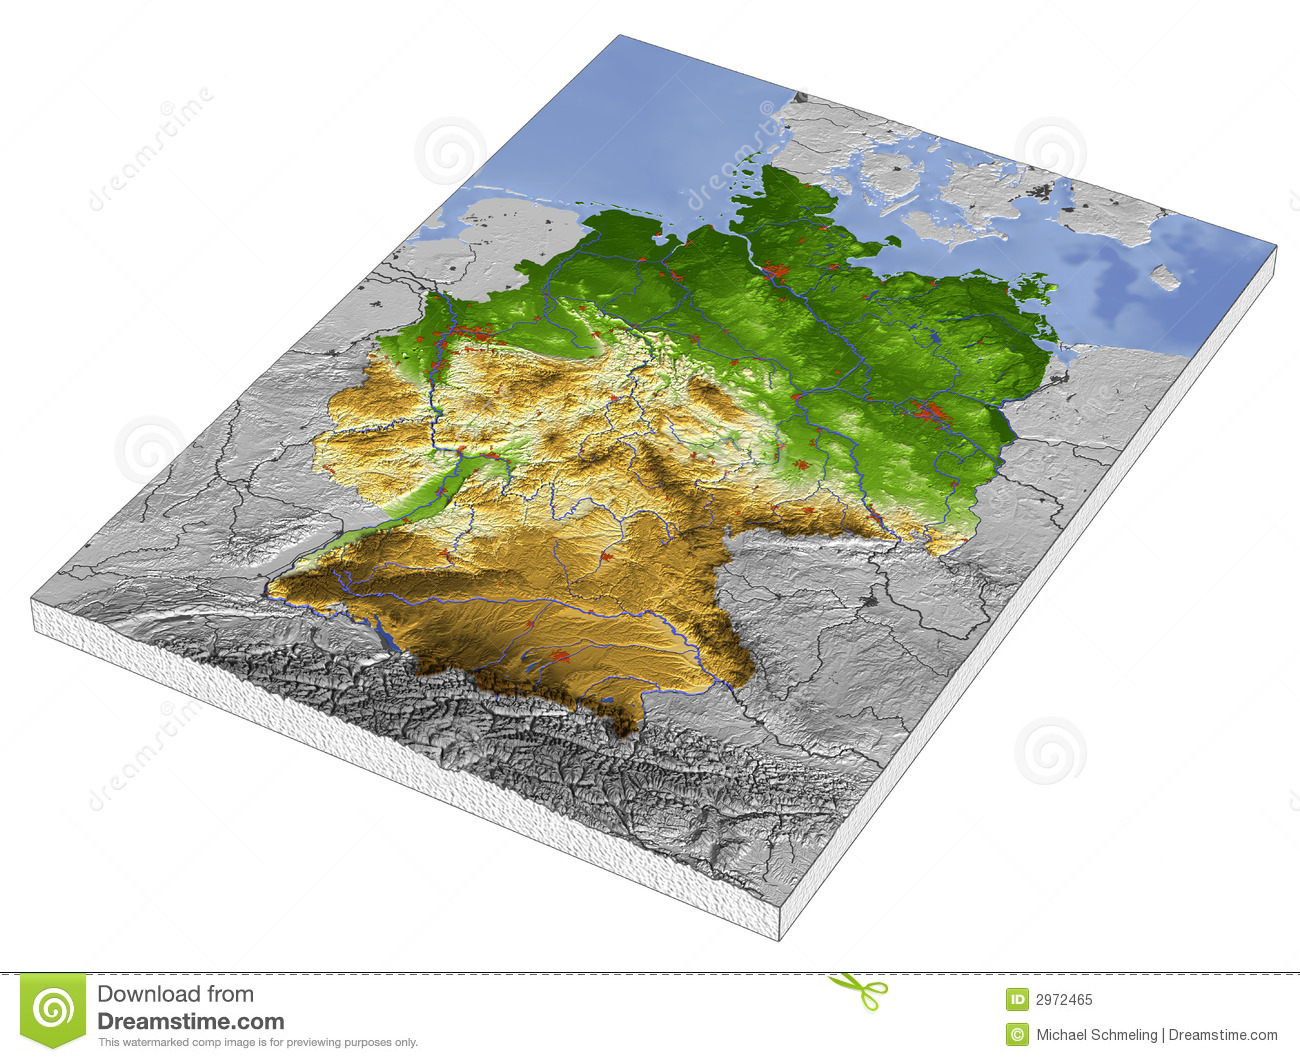 Map Of Germany 3d.Germany 3d Relief Map Stock Illustration Illustration Of Chart